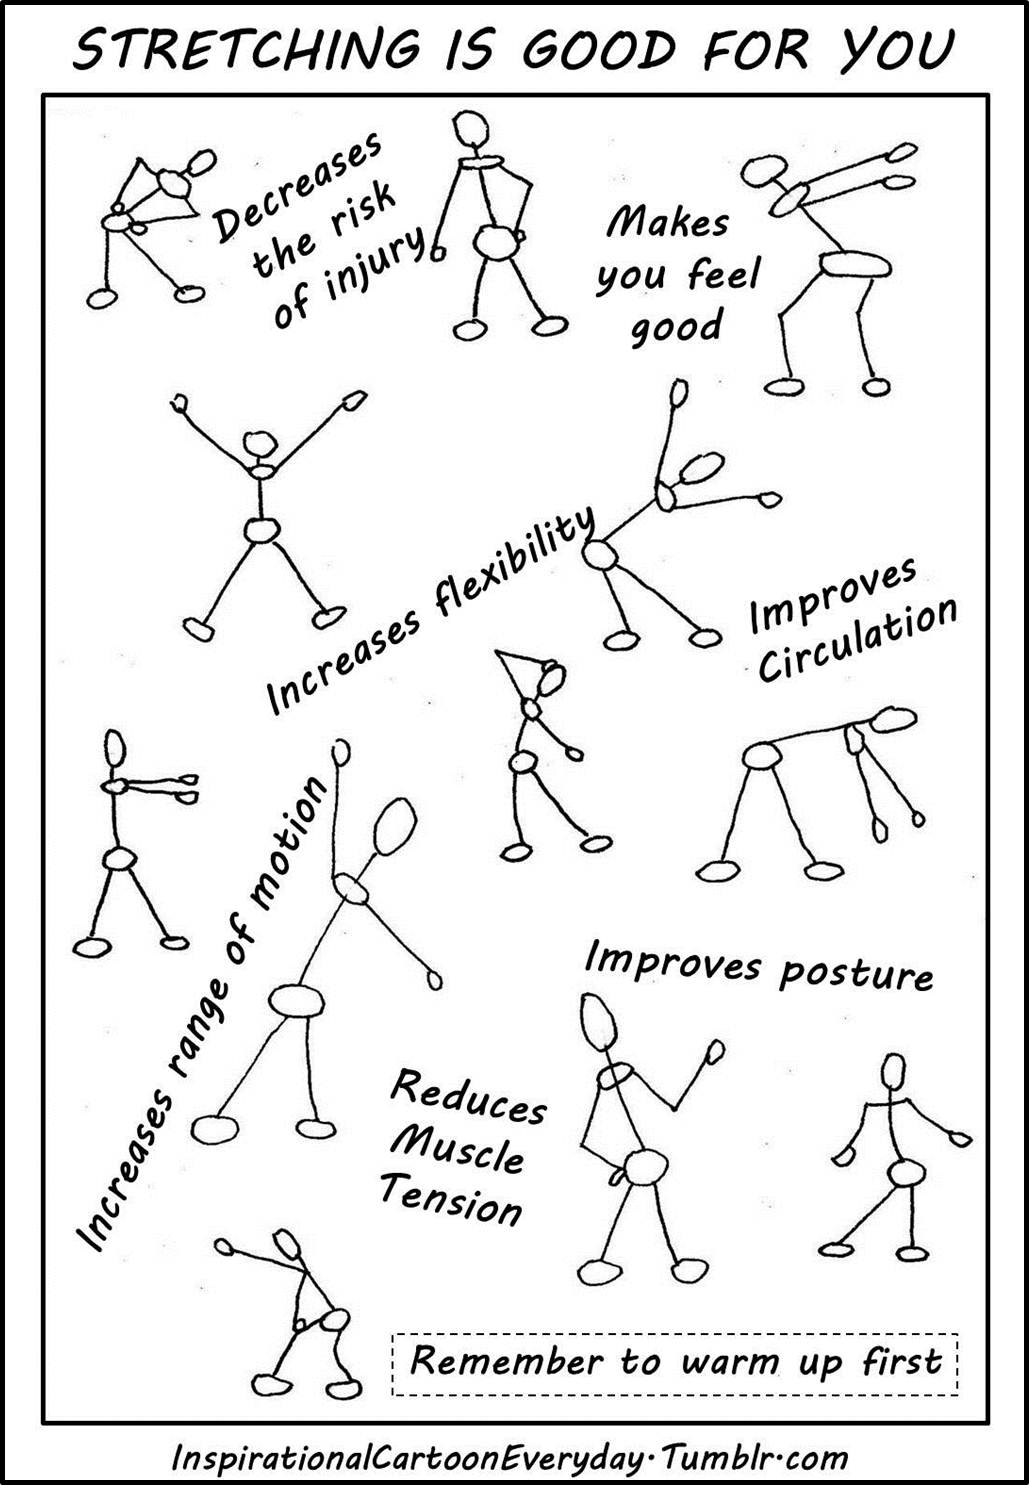 Motiveweight Stretching Is Good For You